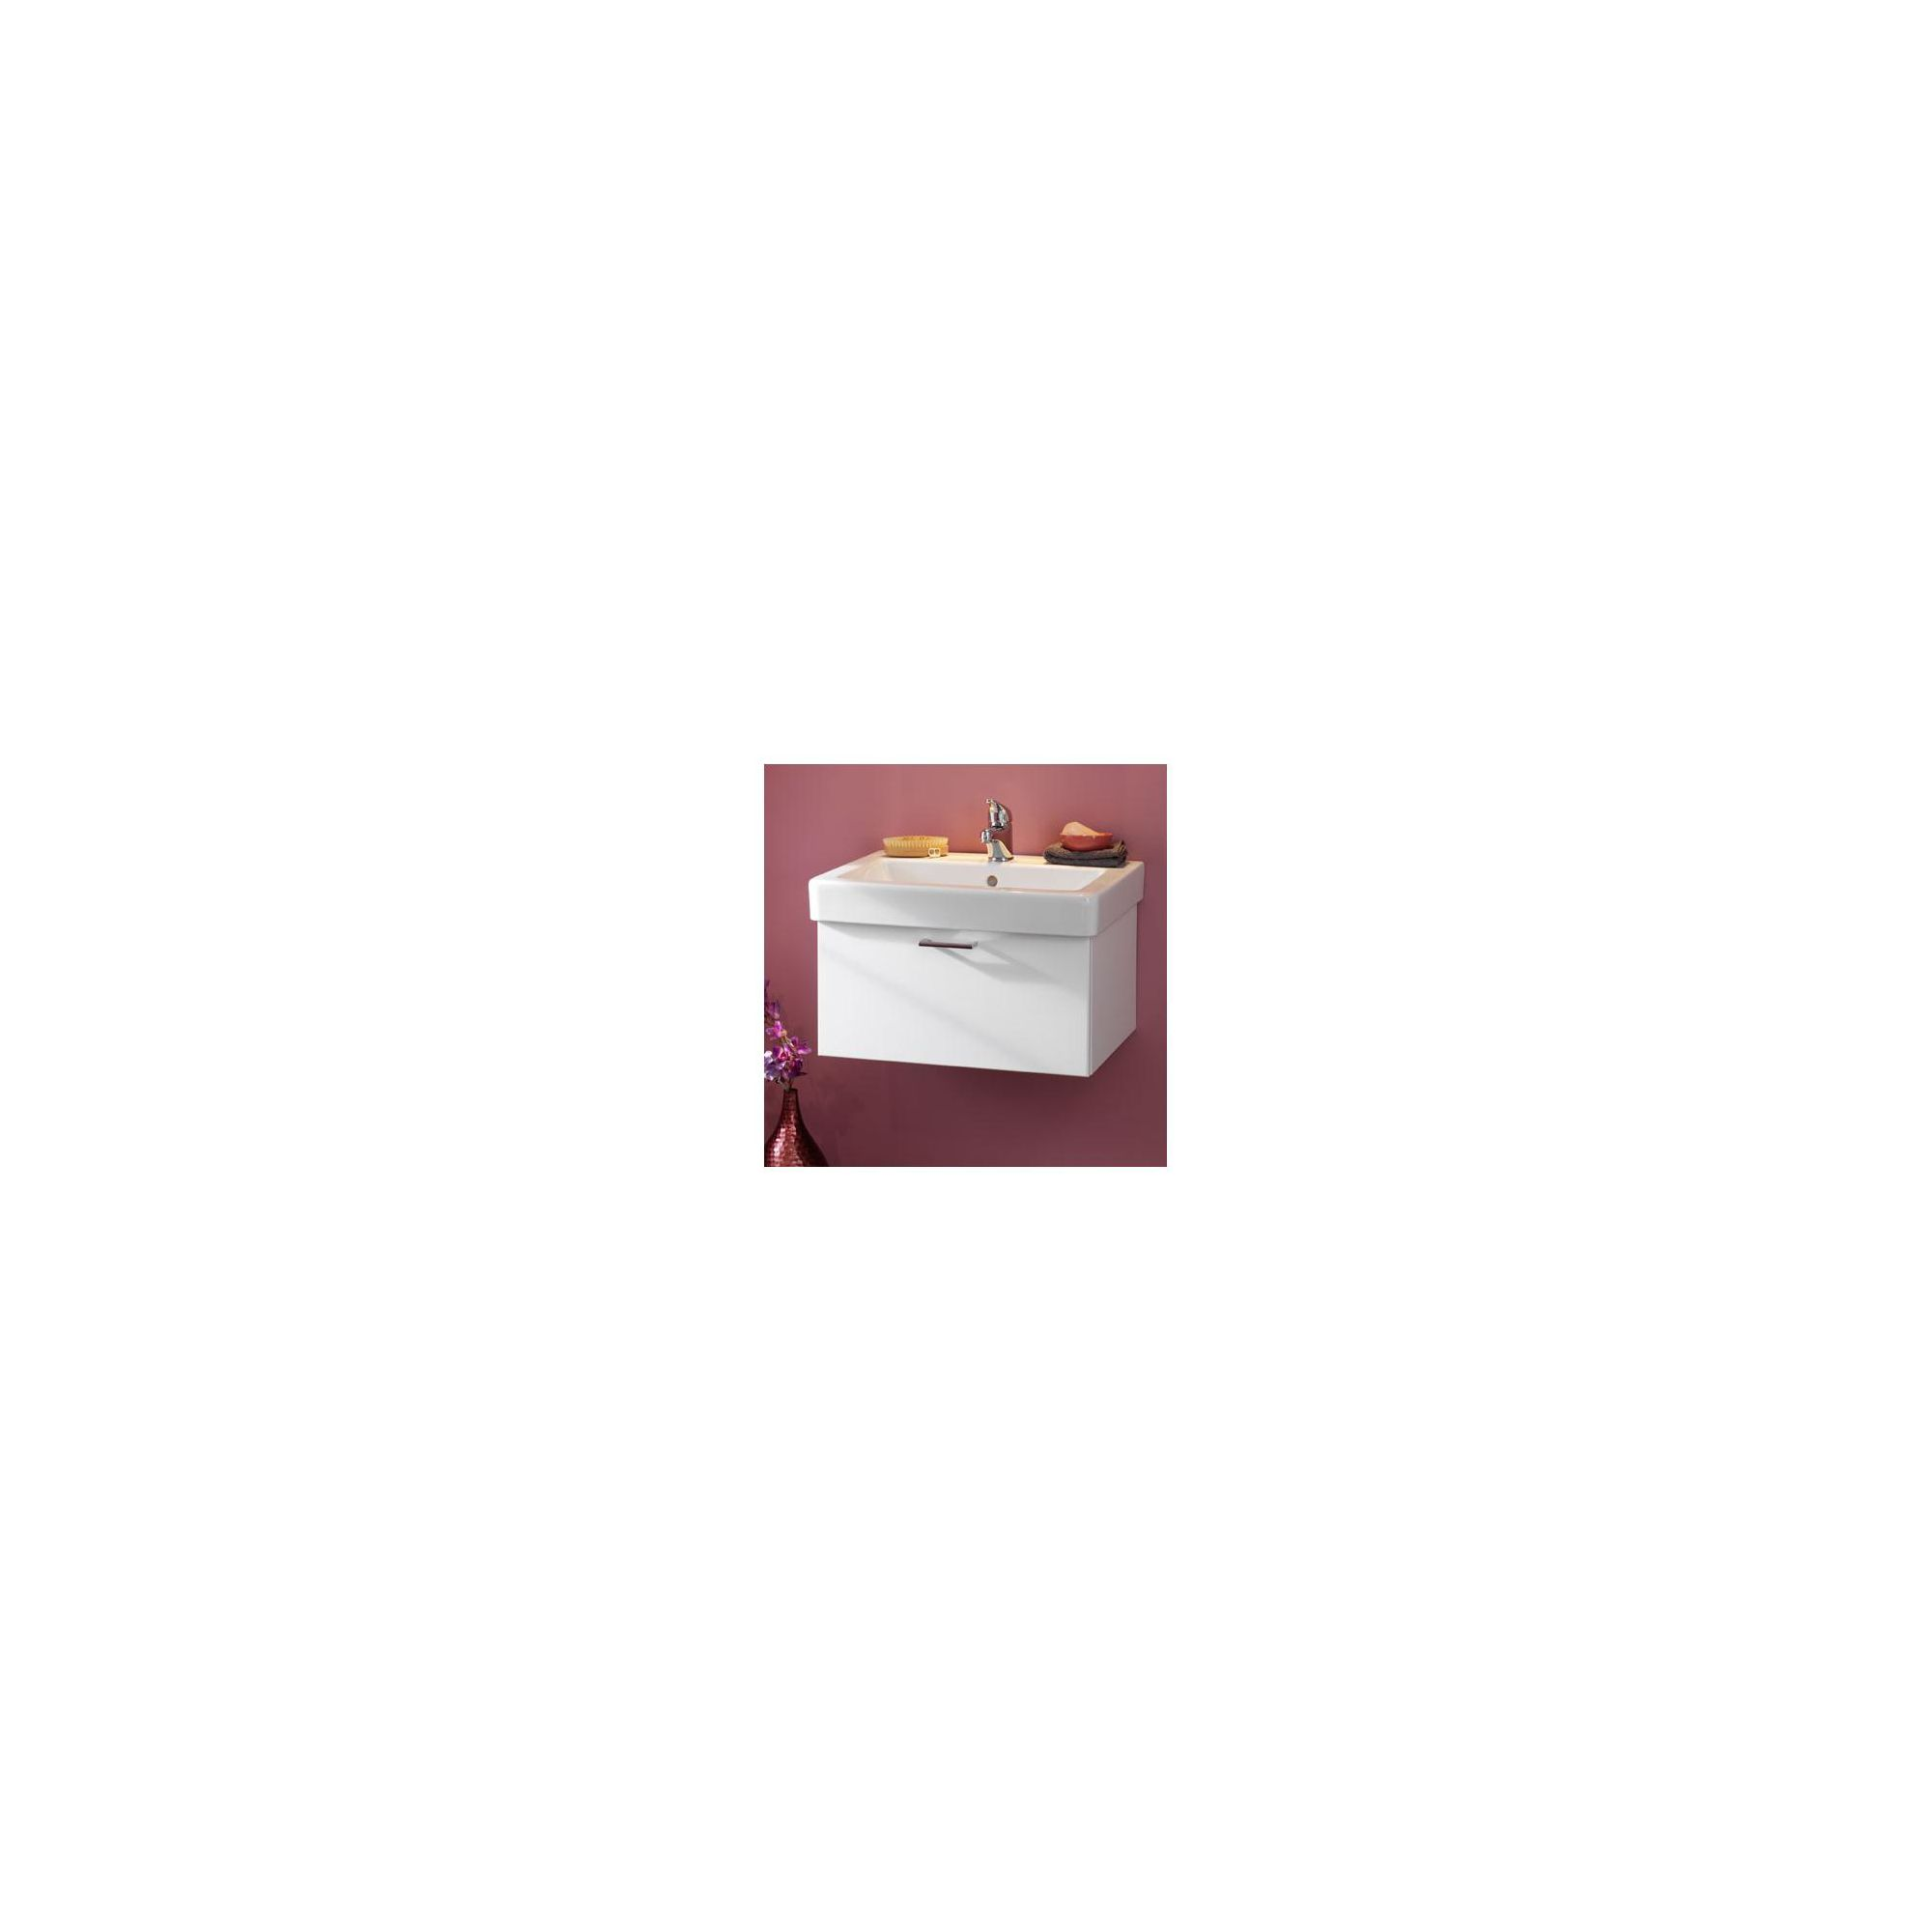 Duchy Trerise White Wall Hung 1 Drawer Vanity Unit and Basin - 600mm Wide x 445mm Deep